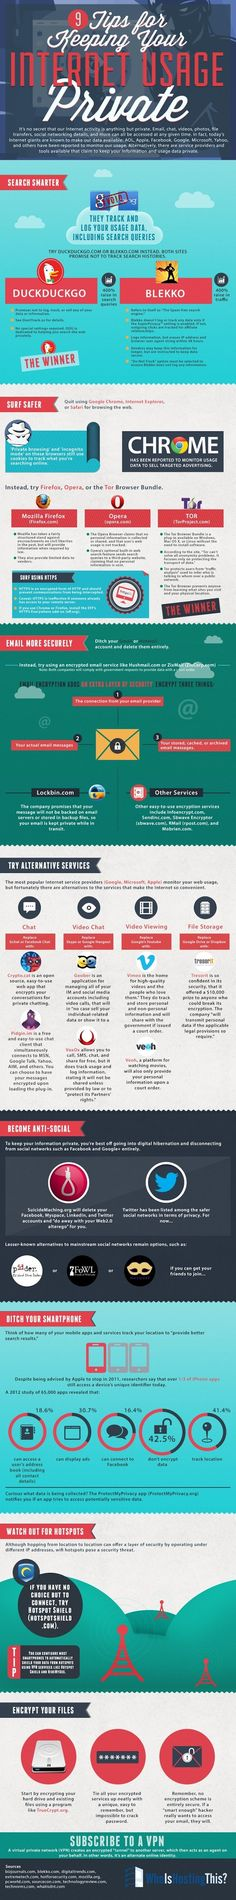 Great #Infographic: Keep Your #Internet Browsing, Email, and Chats Private.